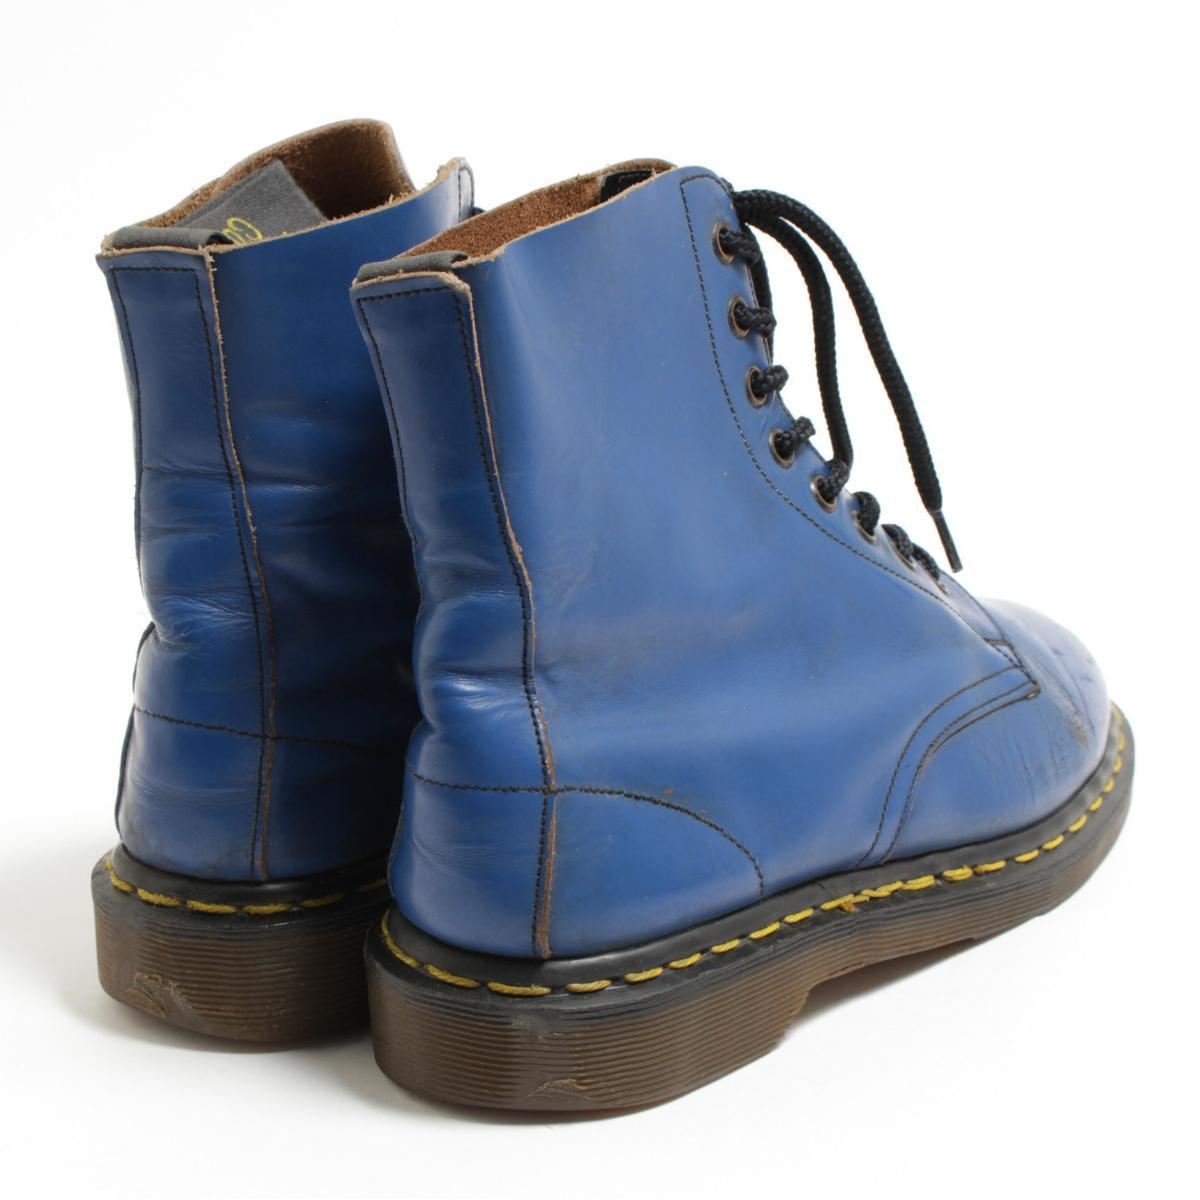 UK6 Lady's 24.5cm /bom6468 made in the doctor Martin Dr.Martens white company 8 hall boots U.K.